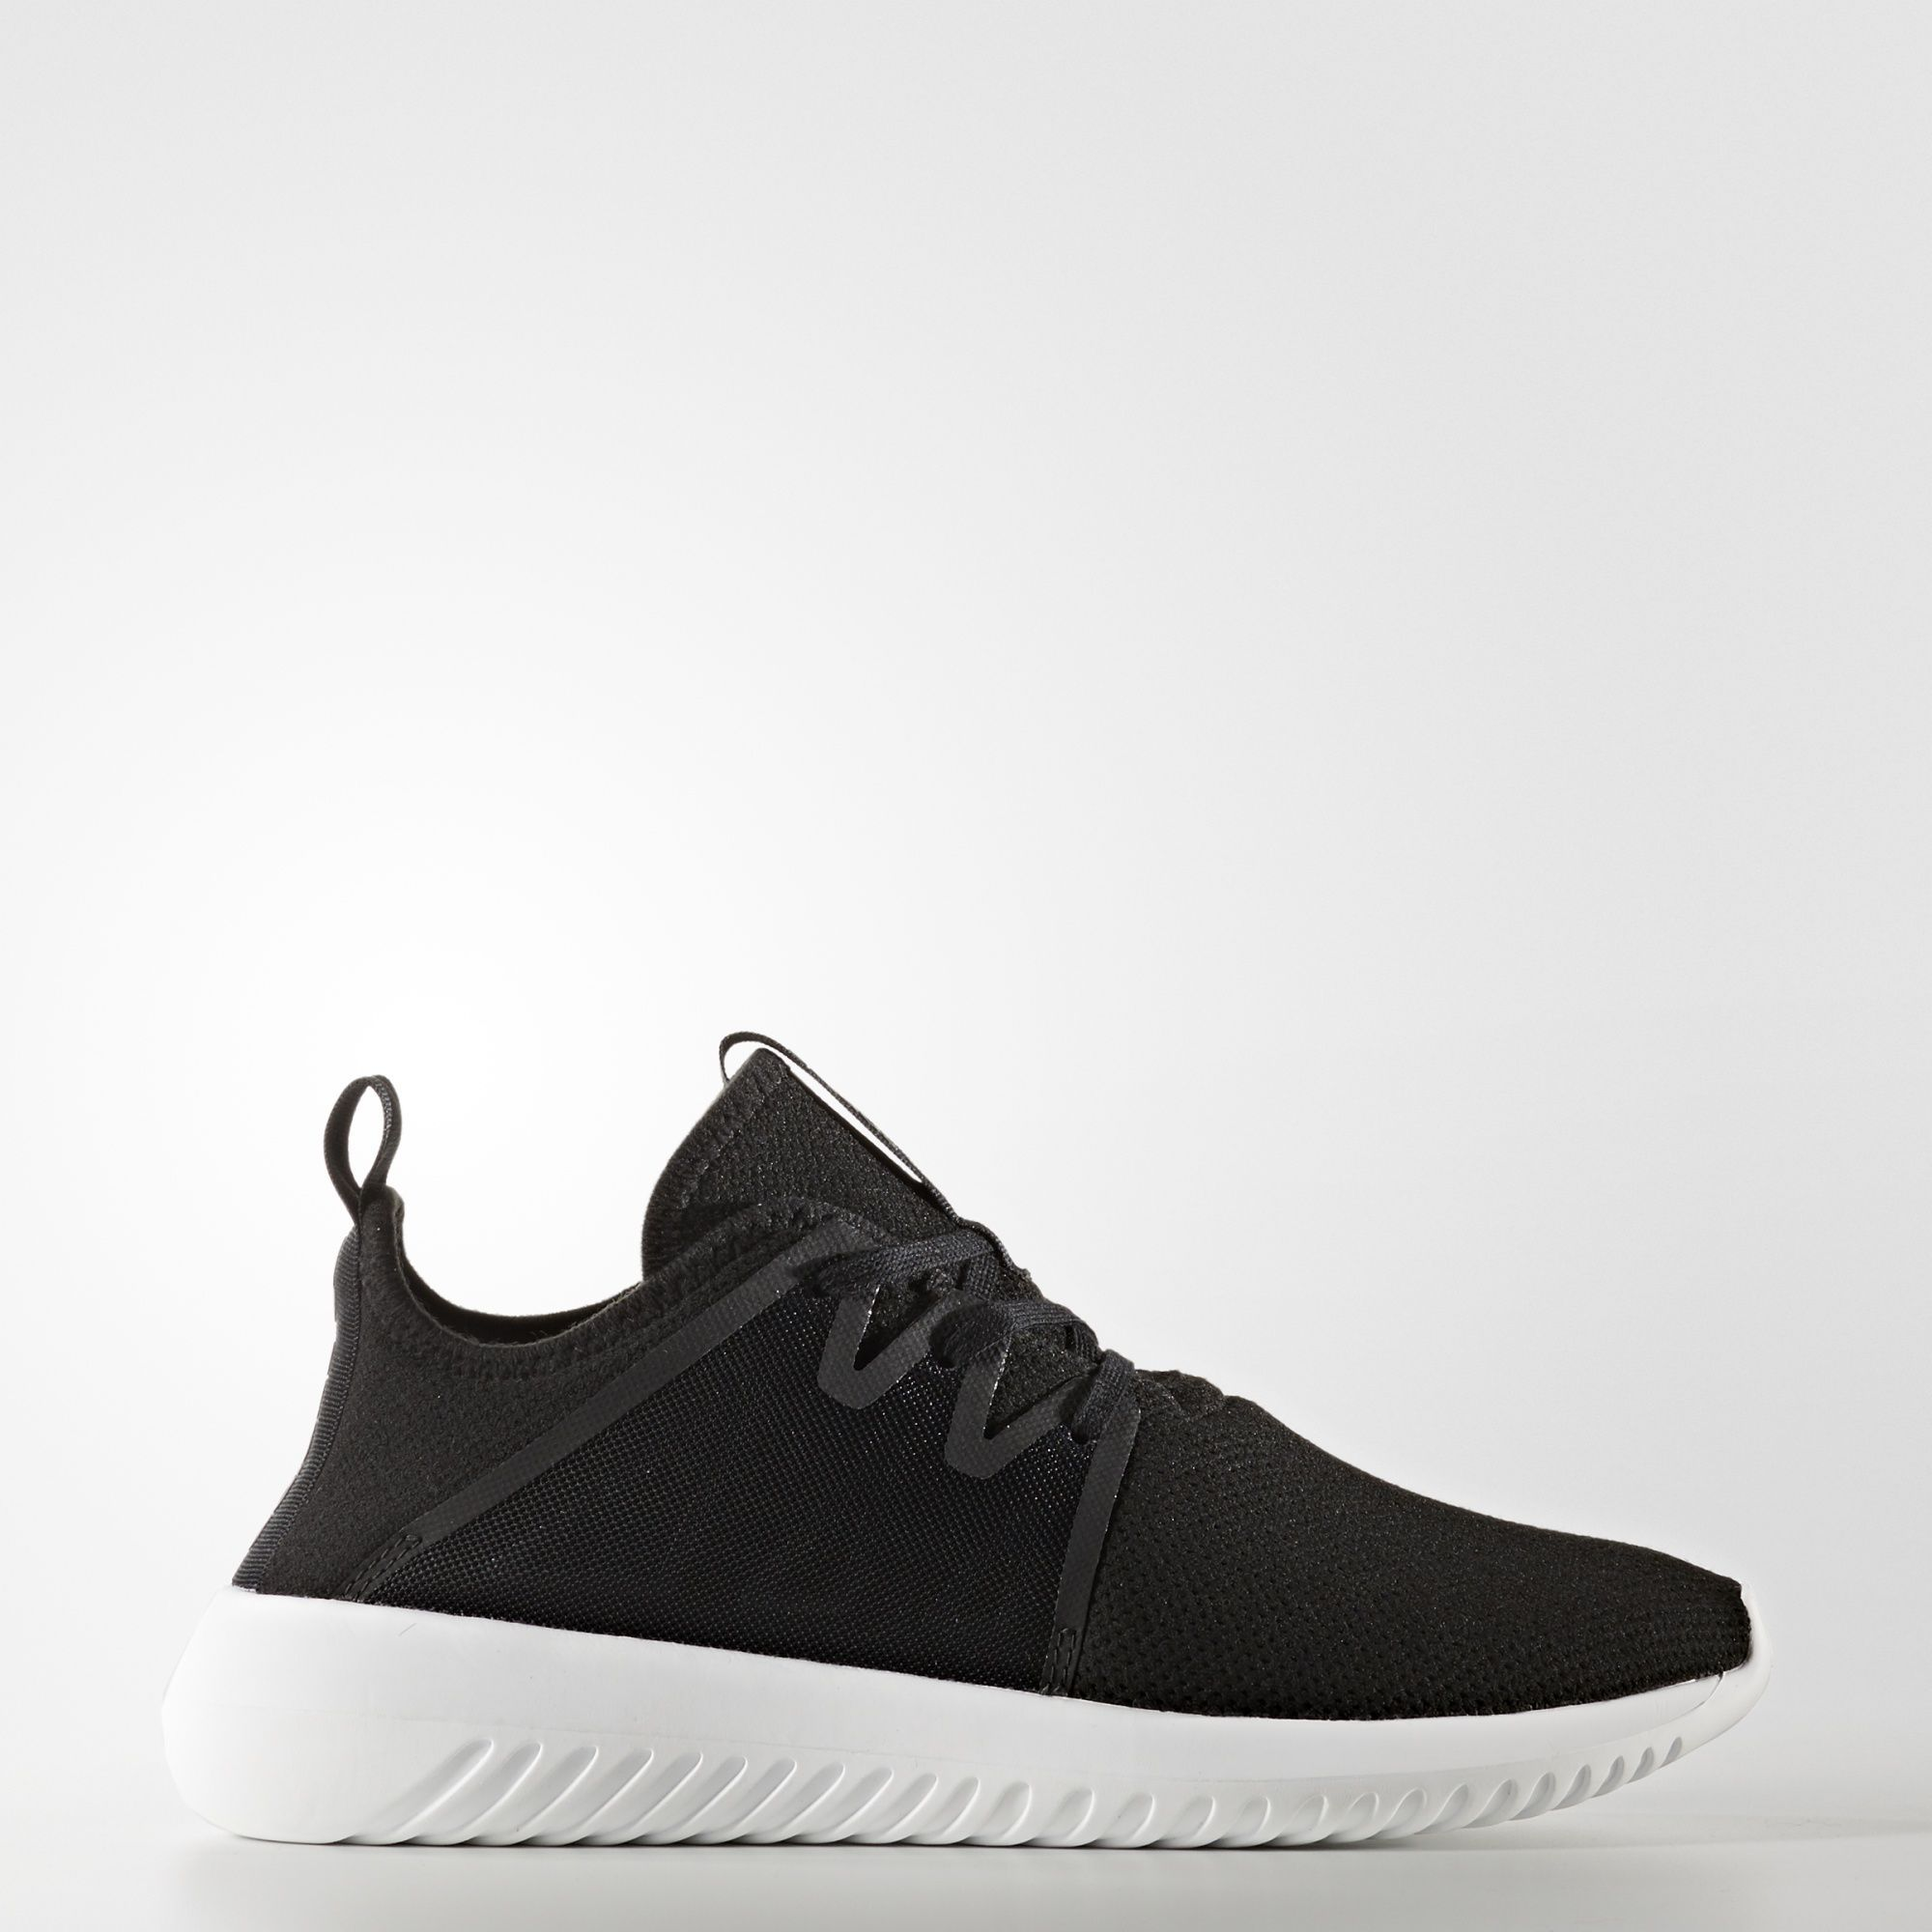 Here's a Great Price on Men's Cheap Adidas Tubular Shadow Sneaker